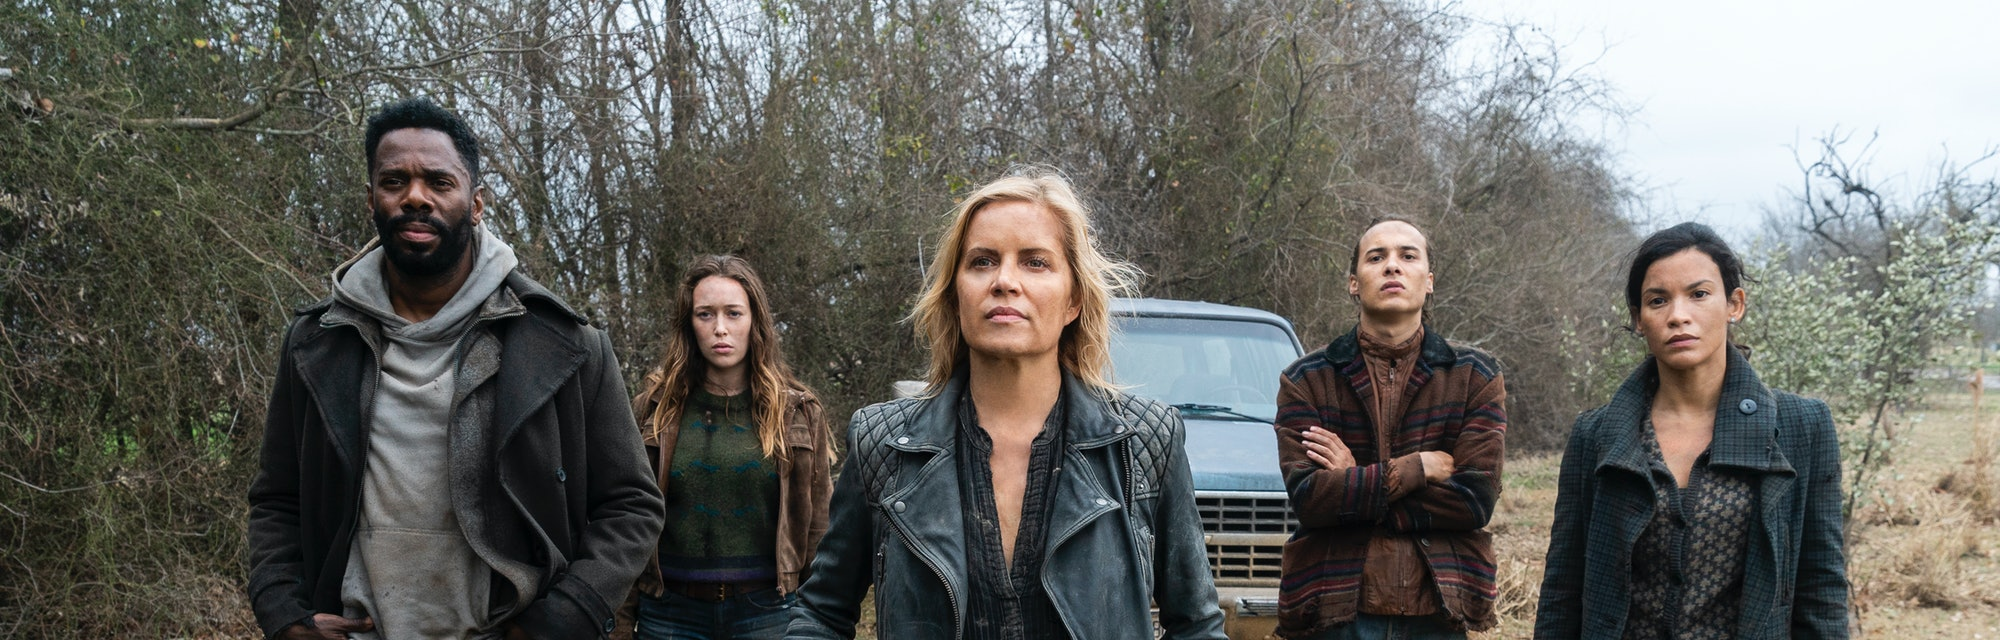 Fear The Walking Dead Season 4 Returns Way Later This Summer